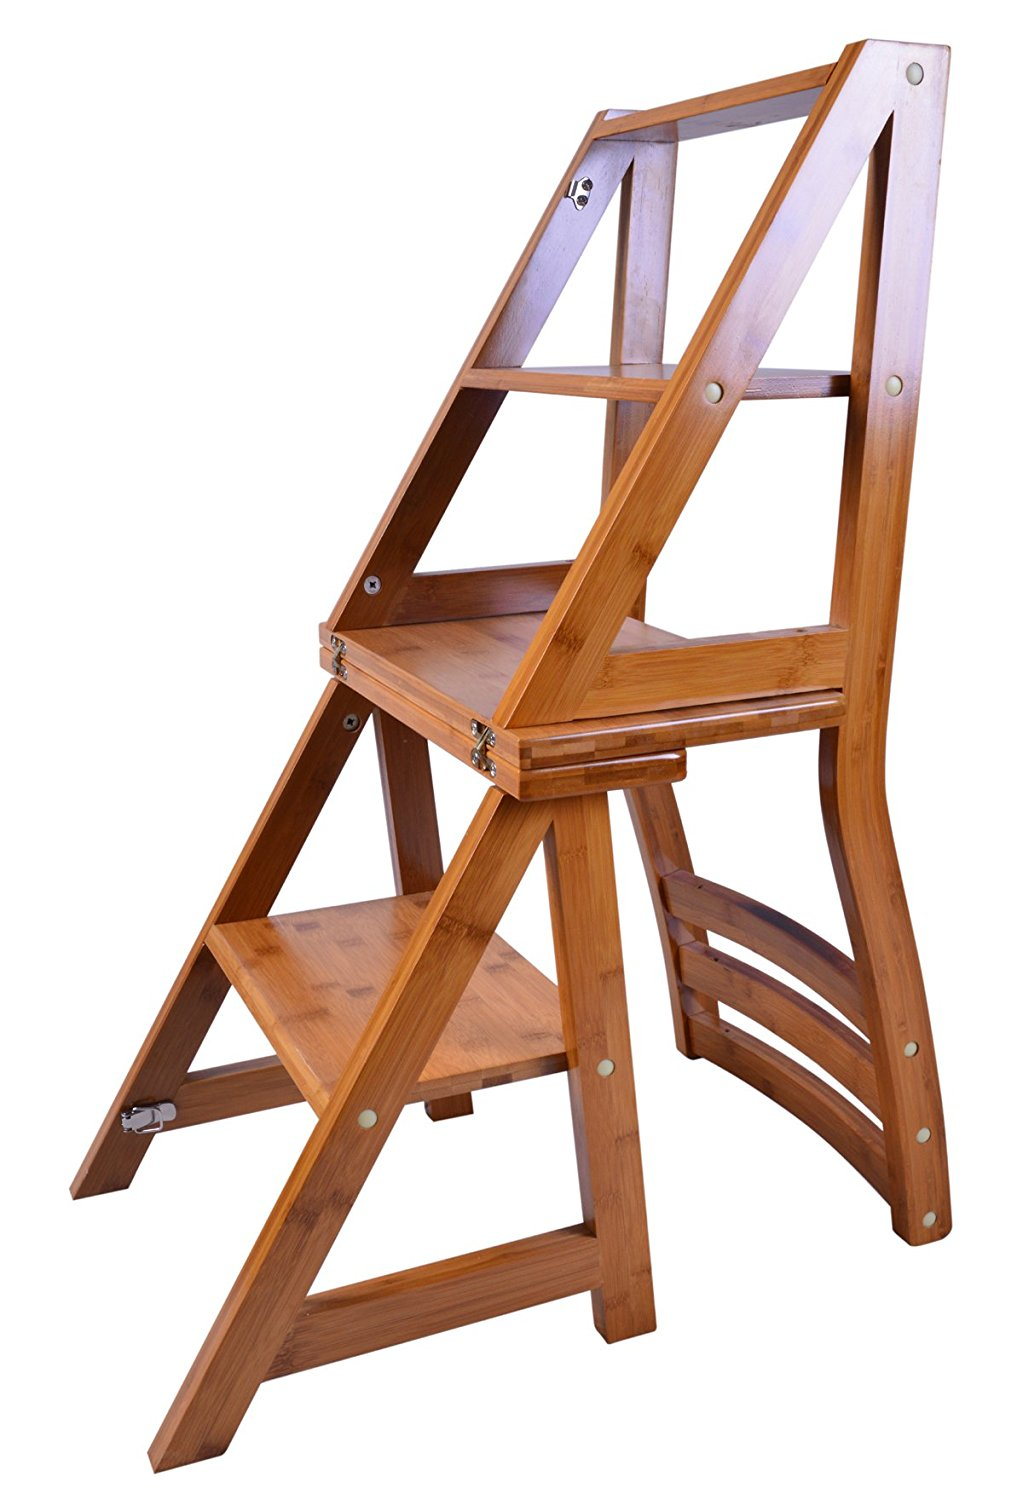 Folding fold up library step ladder chair office kitchen for Fold up garden chairs